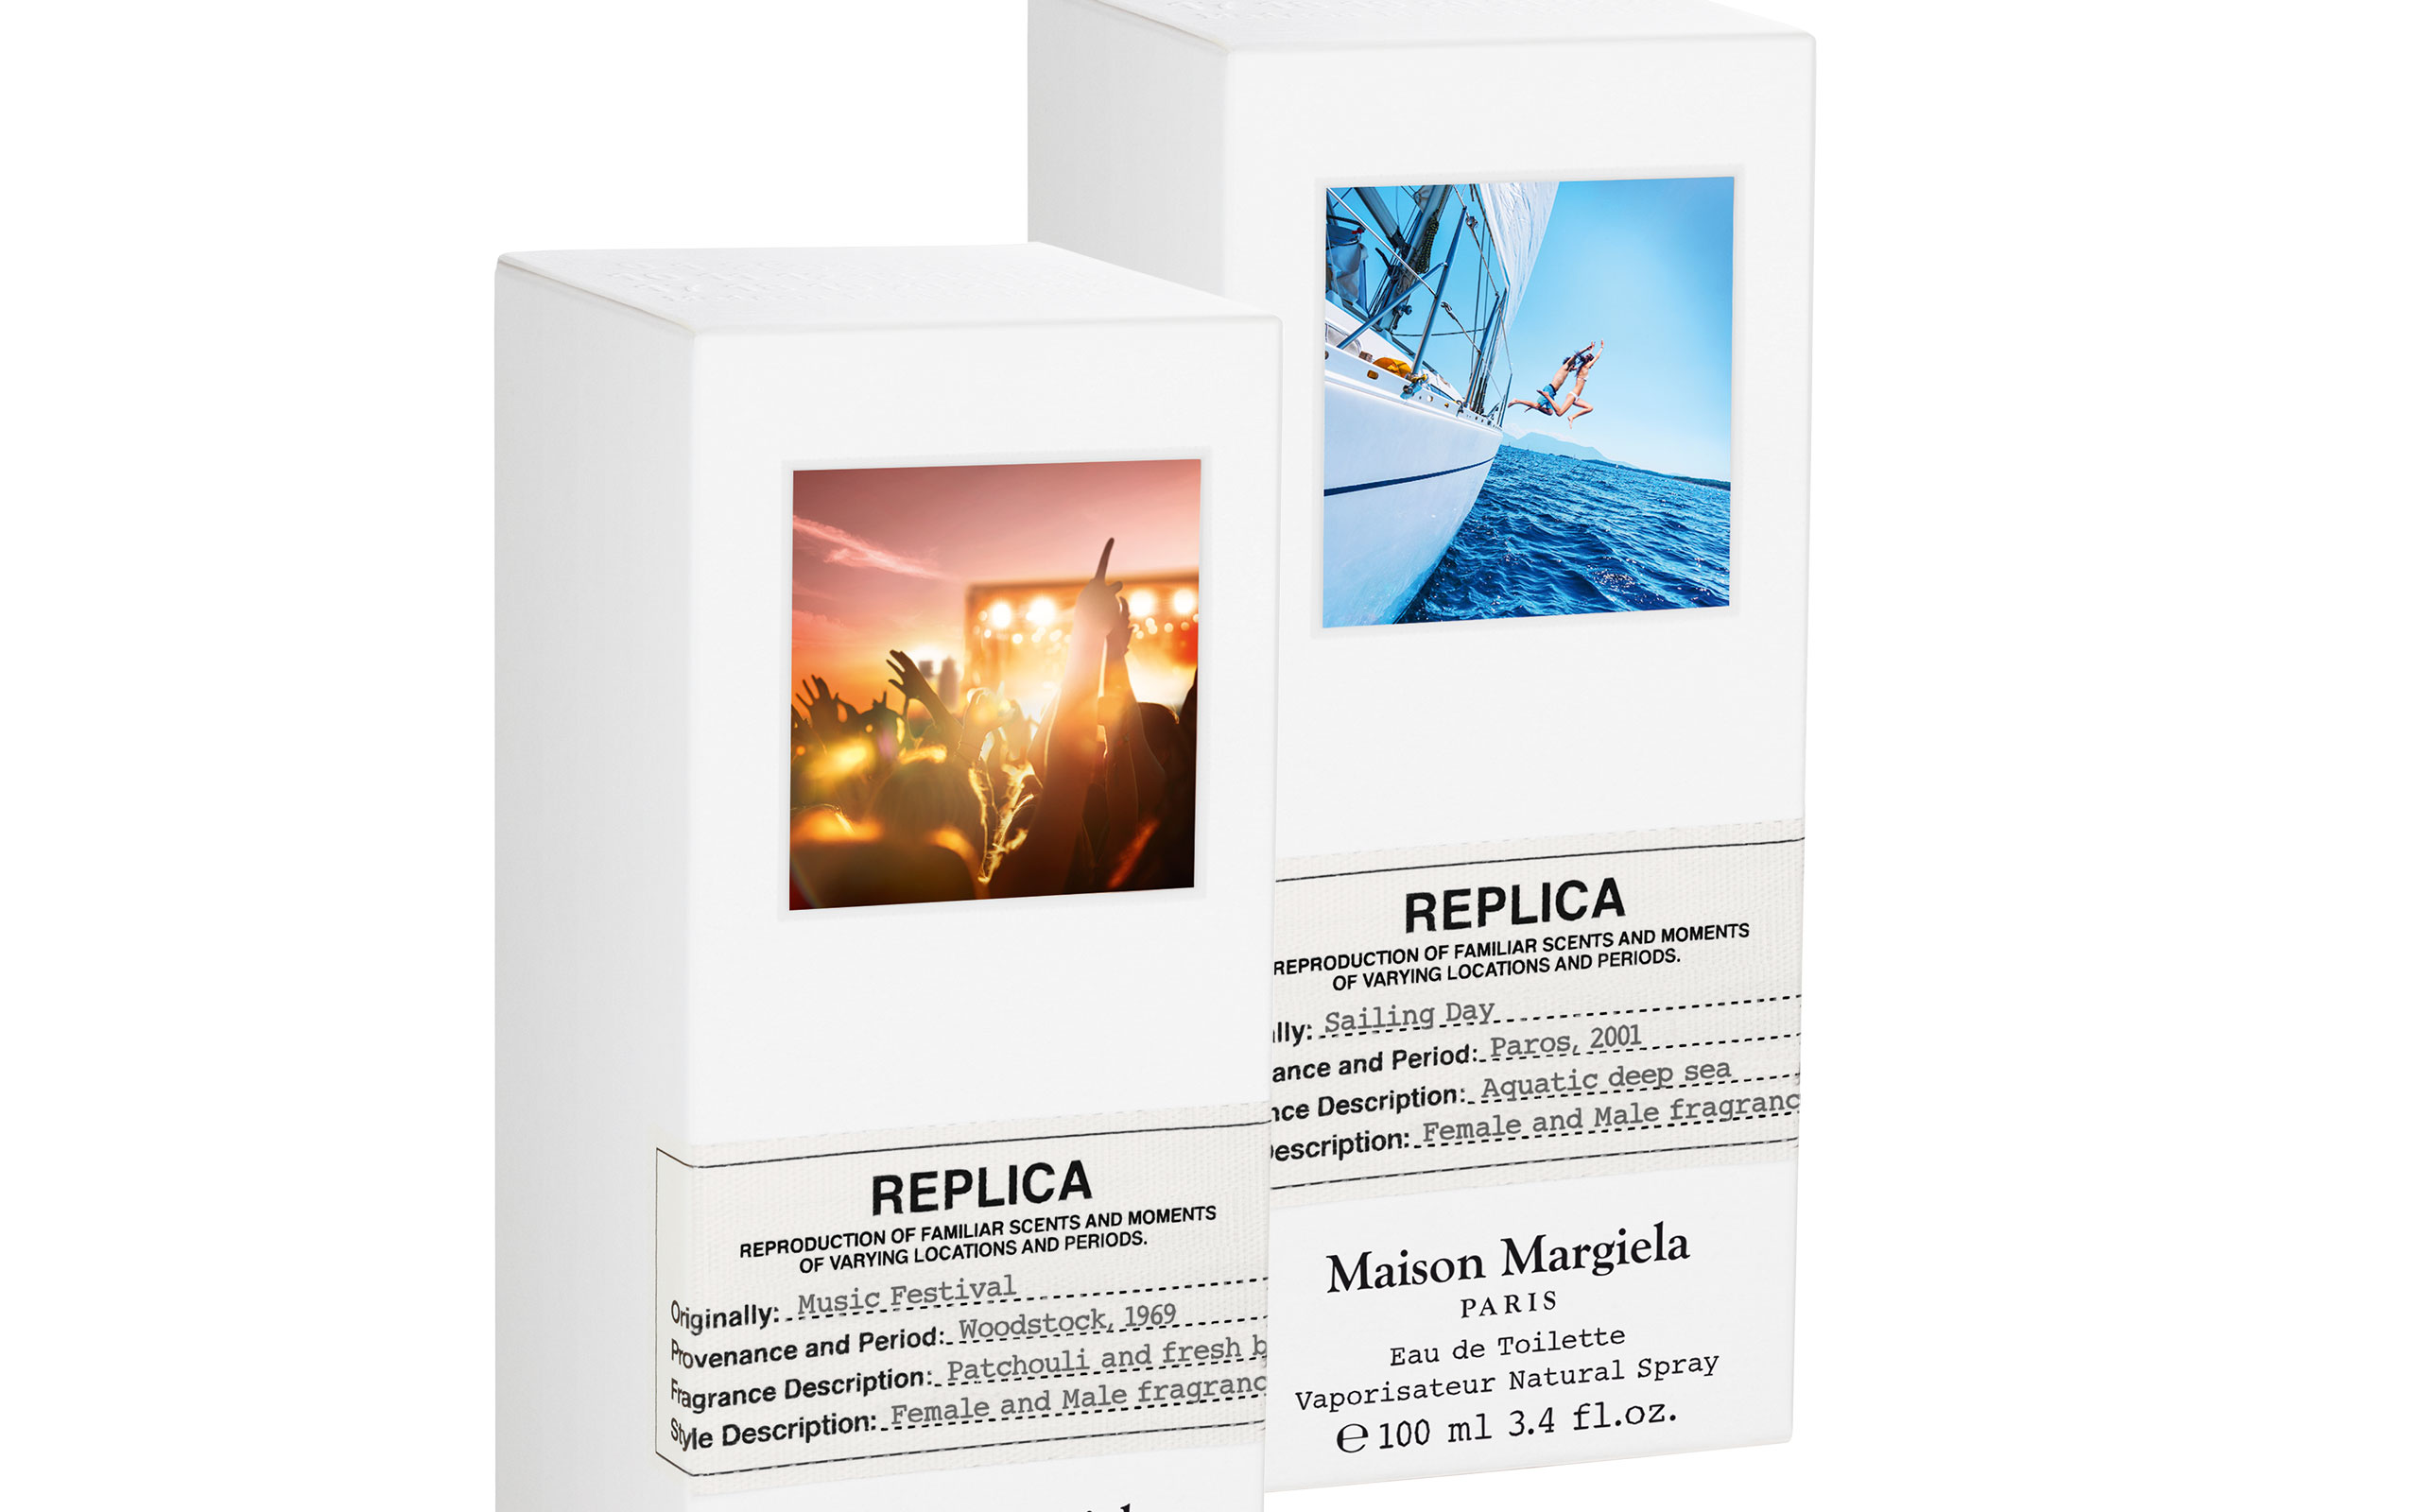 3 New Scent Joins 'REPLICA' Fragrance Of Maison Margiela